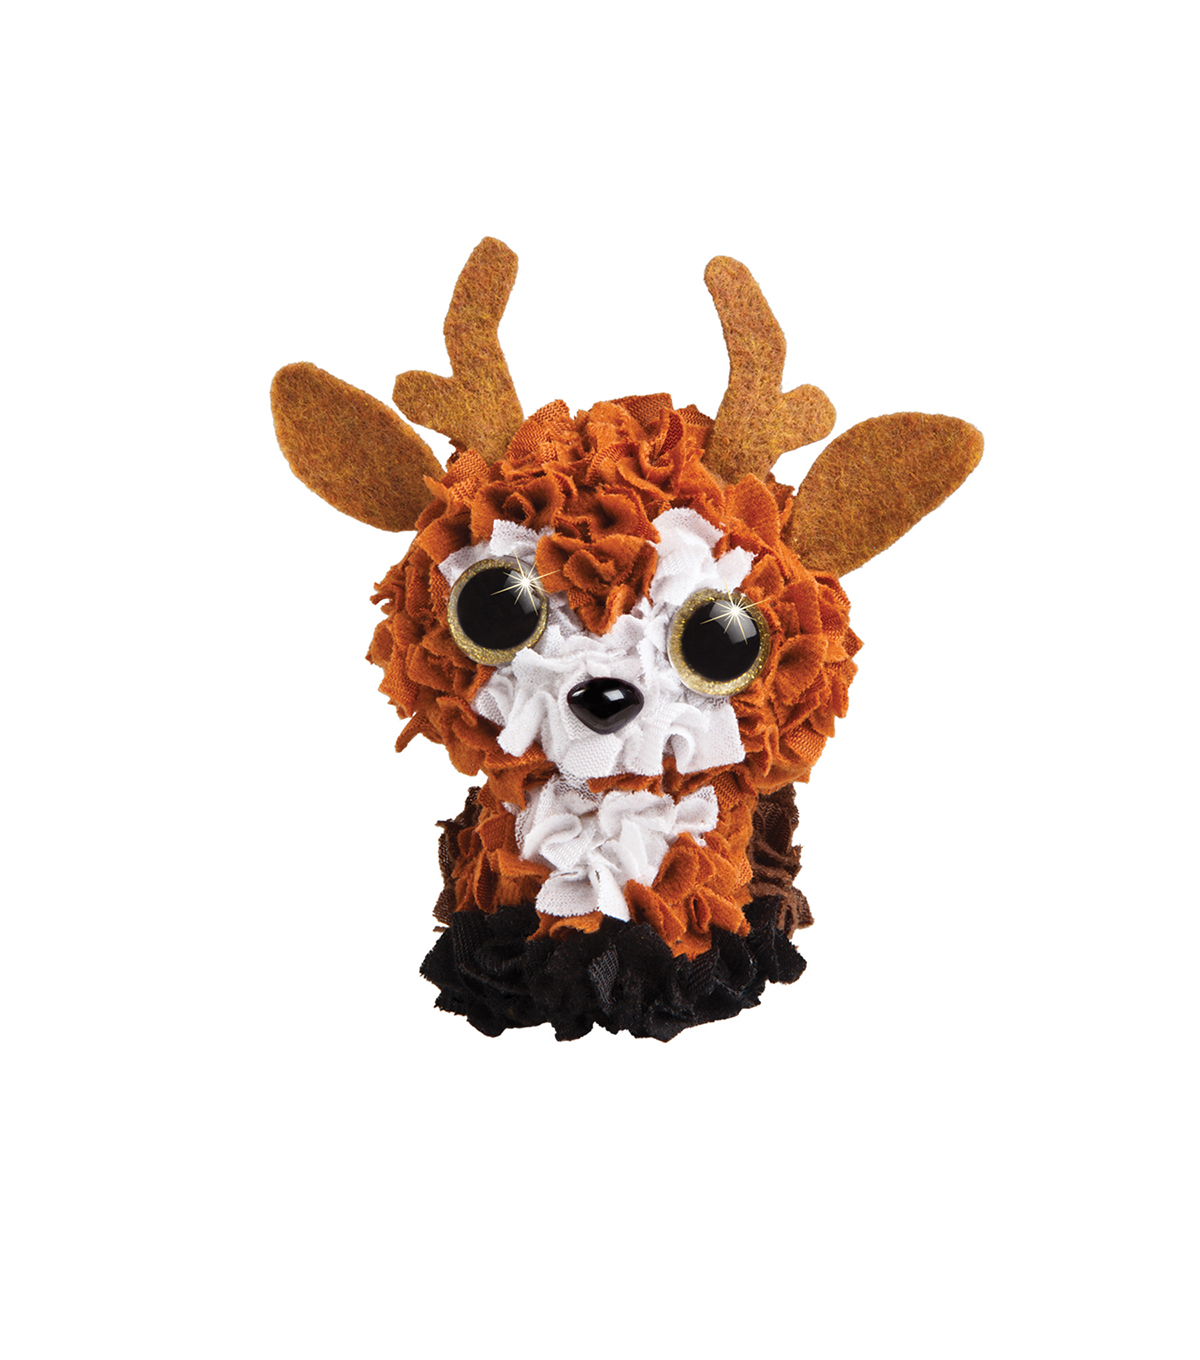 Plush Craft Reindeer 3D Mini